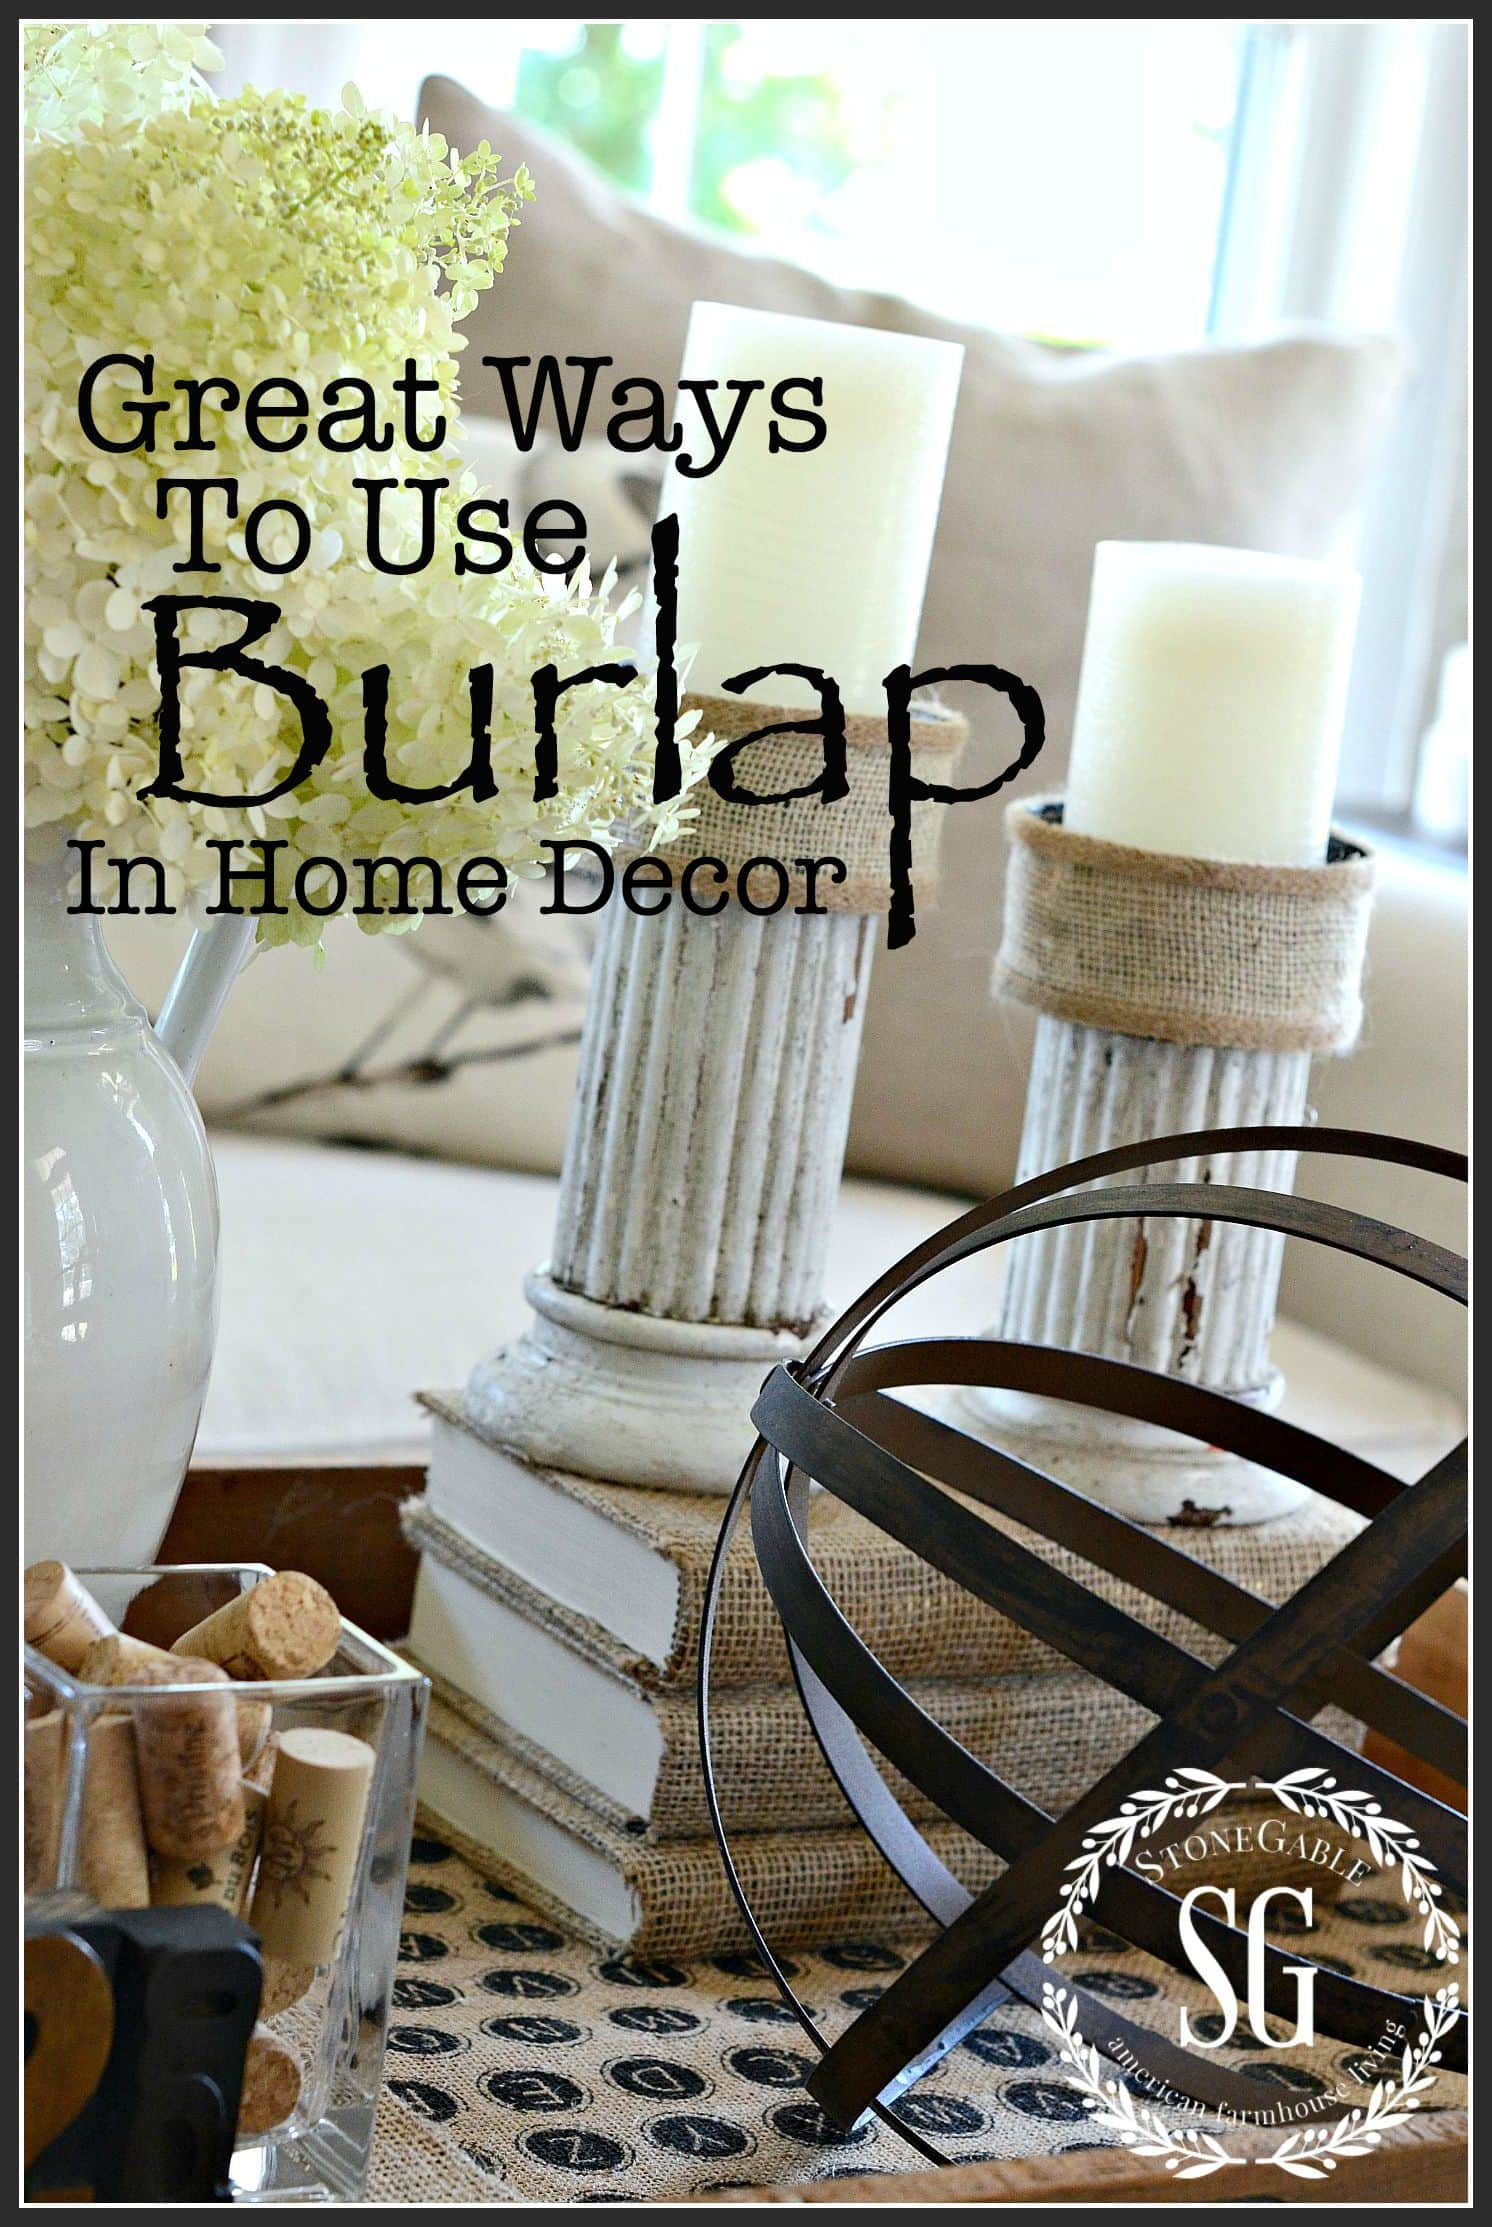 GREAT WAYS TO USE BURLAP IN HOME DECOR- Love it or hate it burlap is here to stay